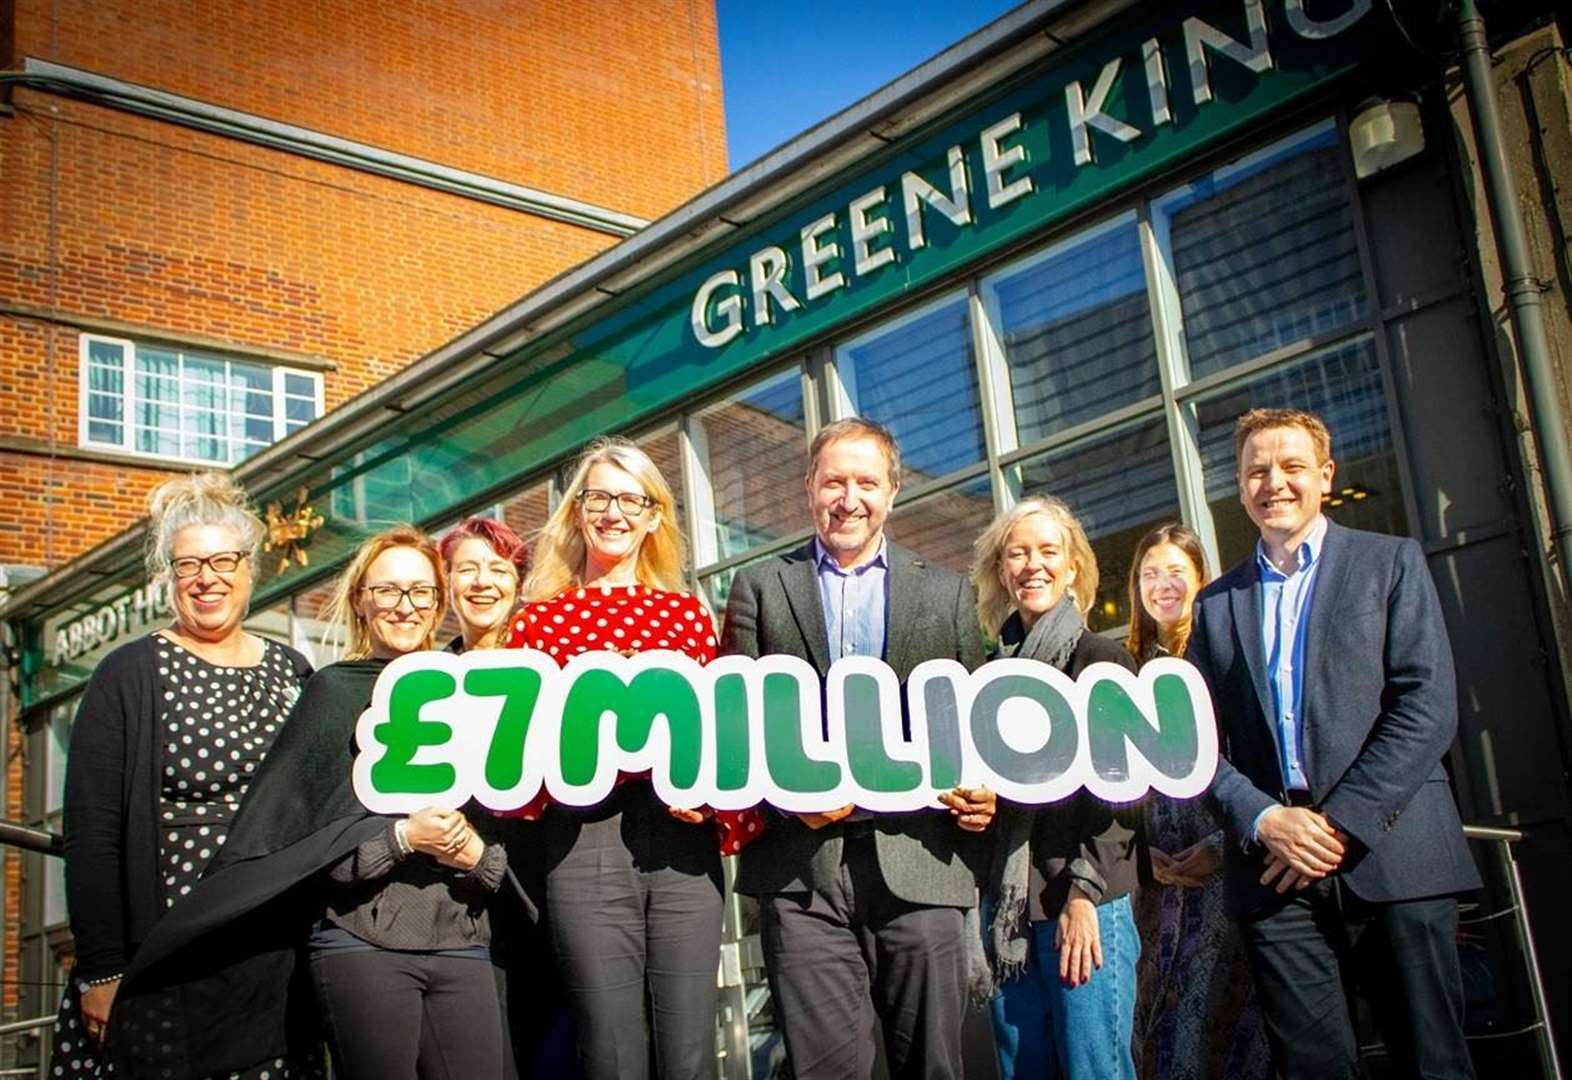 Bury St Edmunds pubs giant hits £7 million fund-raising milestone for cancer charity